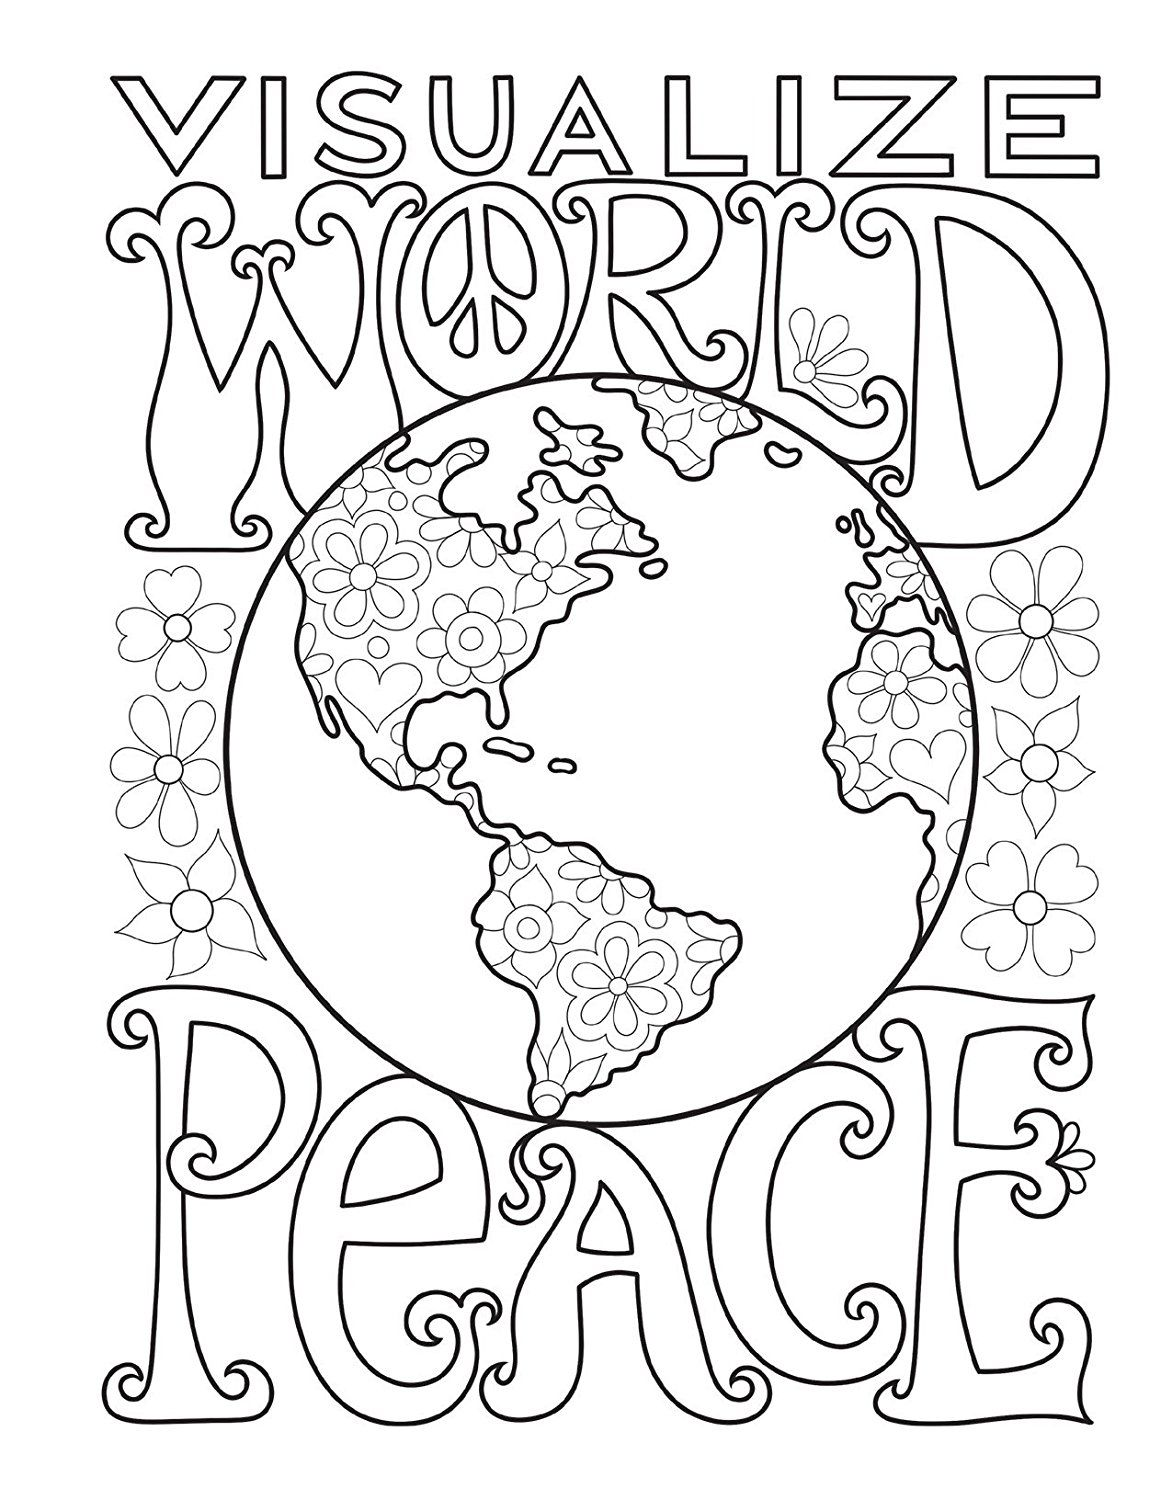 Peace Love Coloring Book Thaneeya Mcardle 9781574219630 Books Amazon Ca Coloring Books Coloring Pages Pattern Coloring Pages